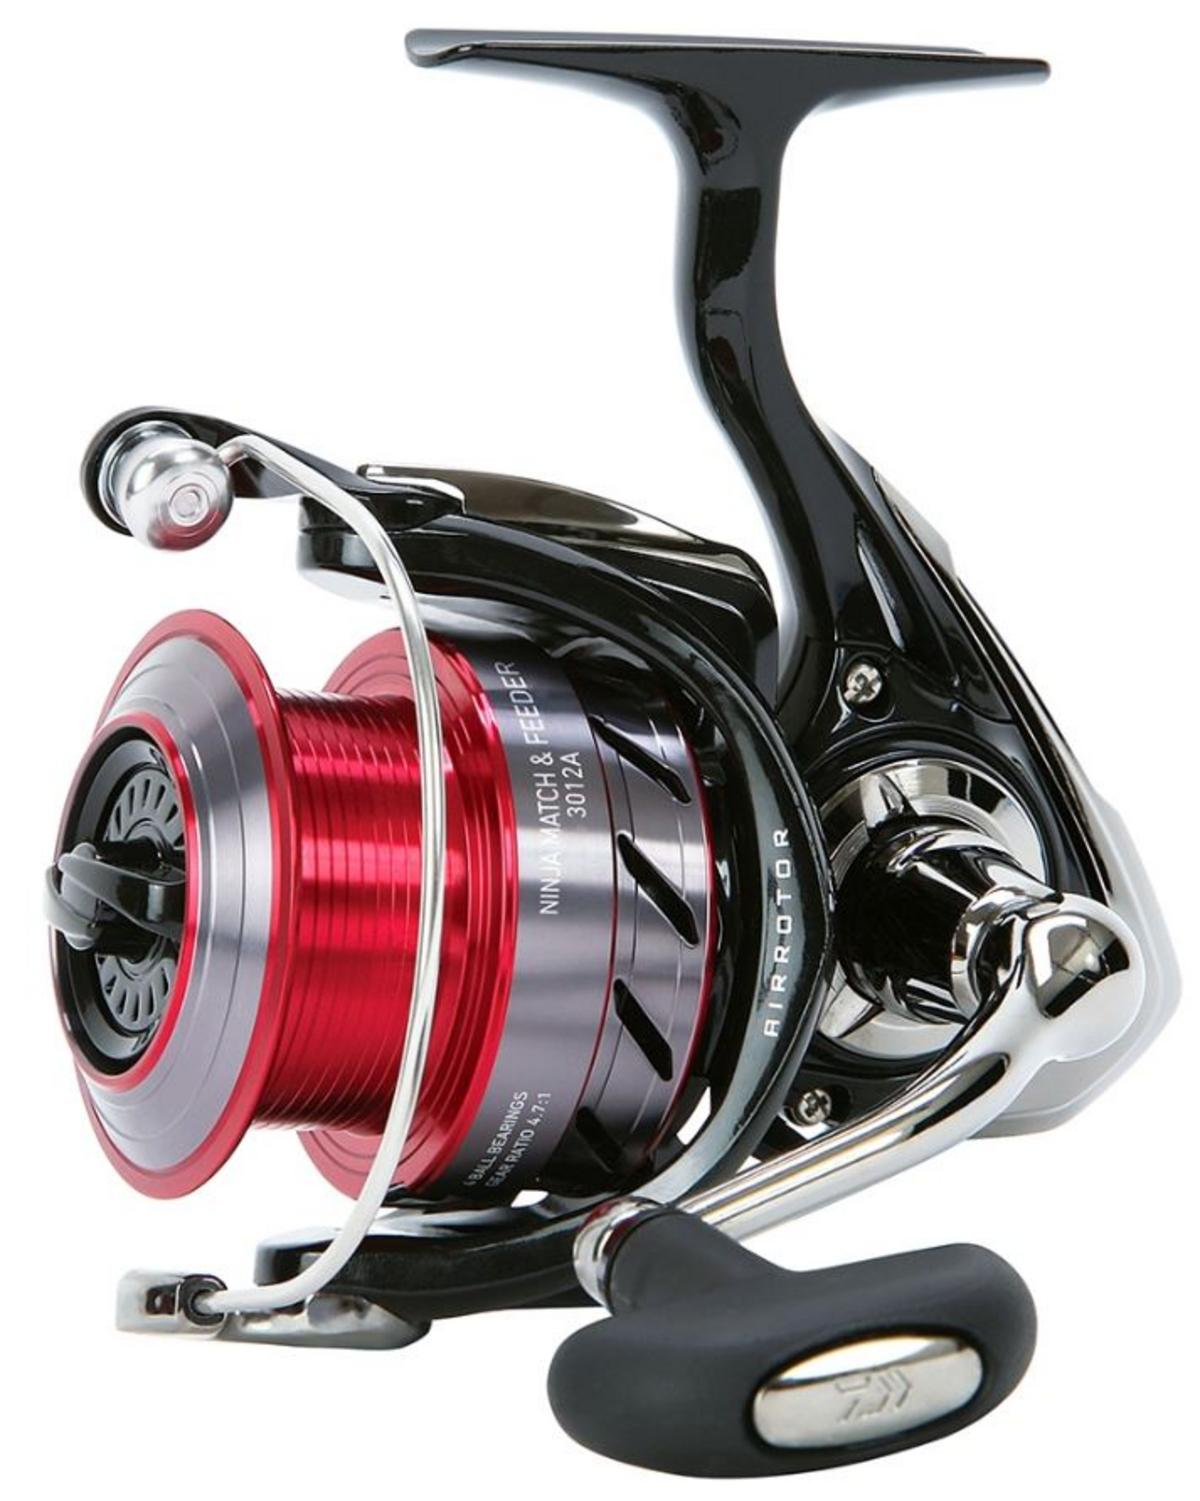 New Daiwa Ninja Match & Feeder Fishing Reel - All Models